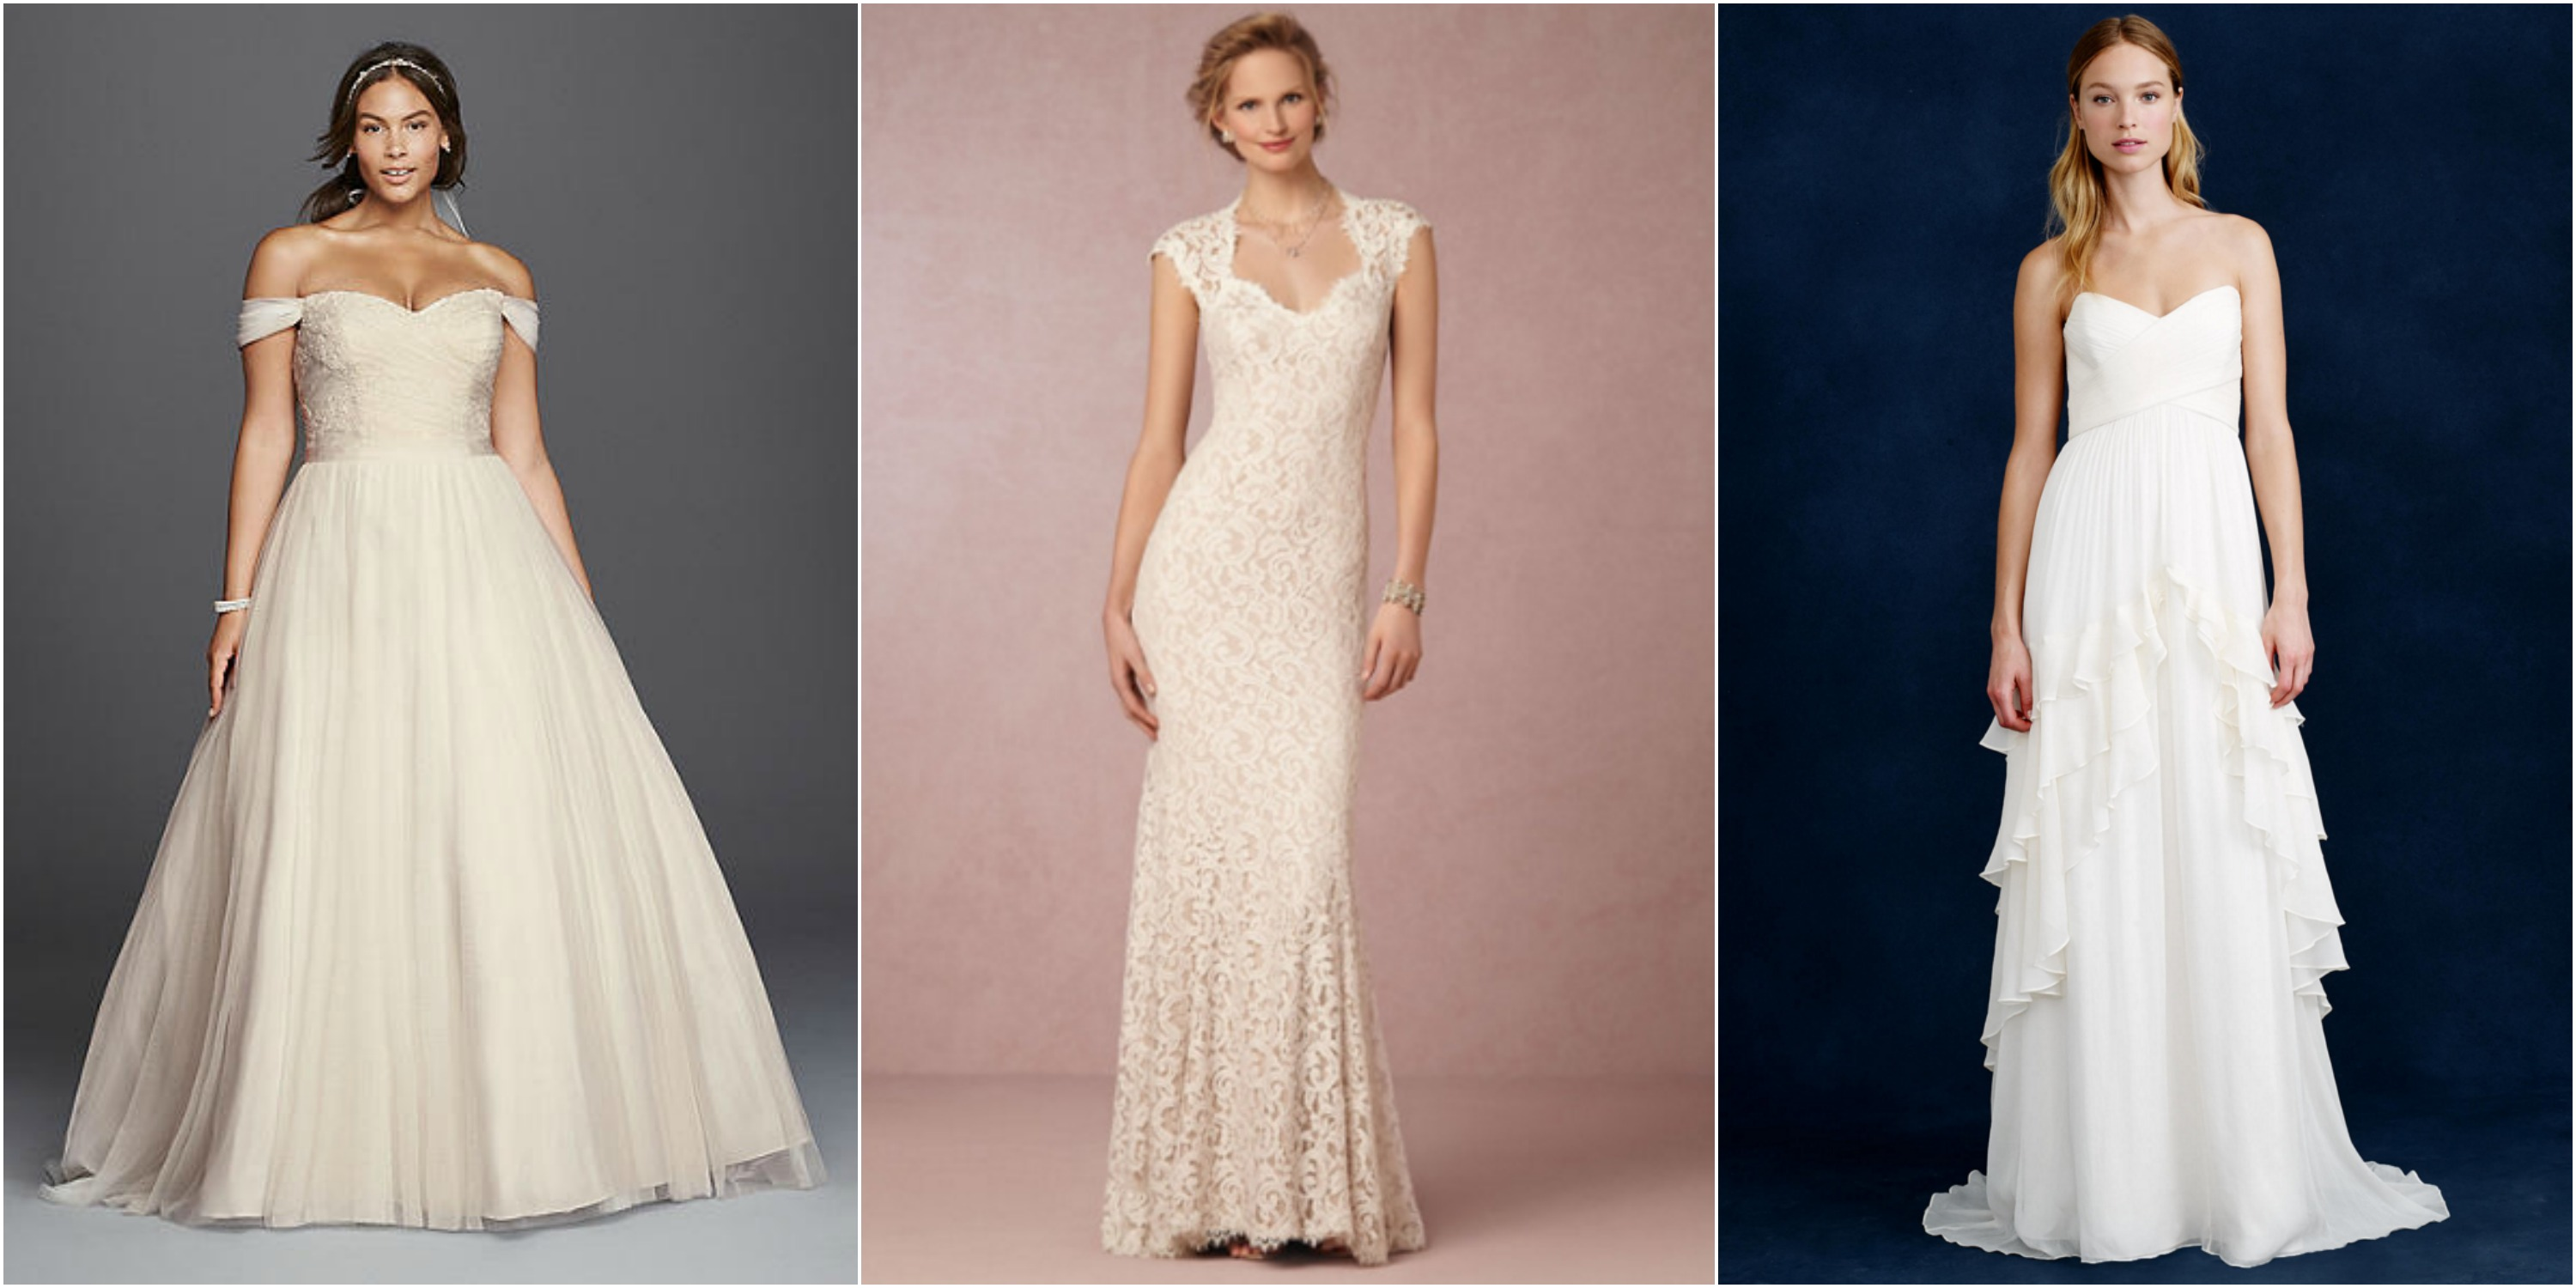 20 Cheap Wedding Dresses Under $1,000 That Look Expensive